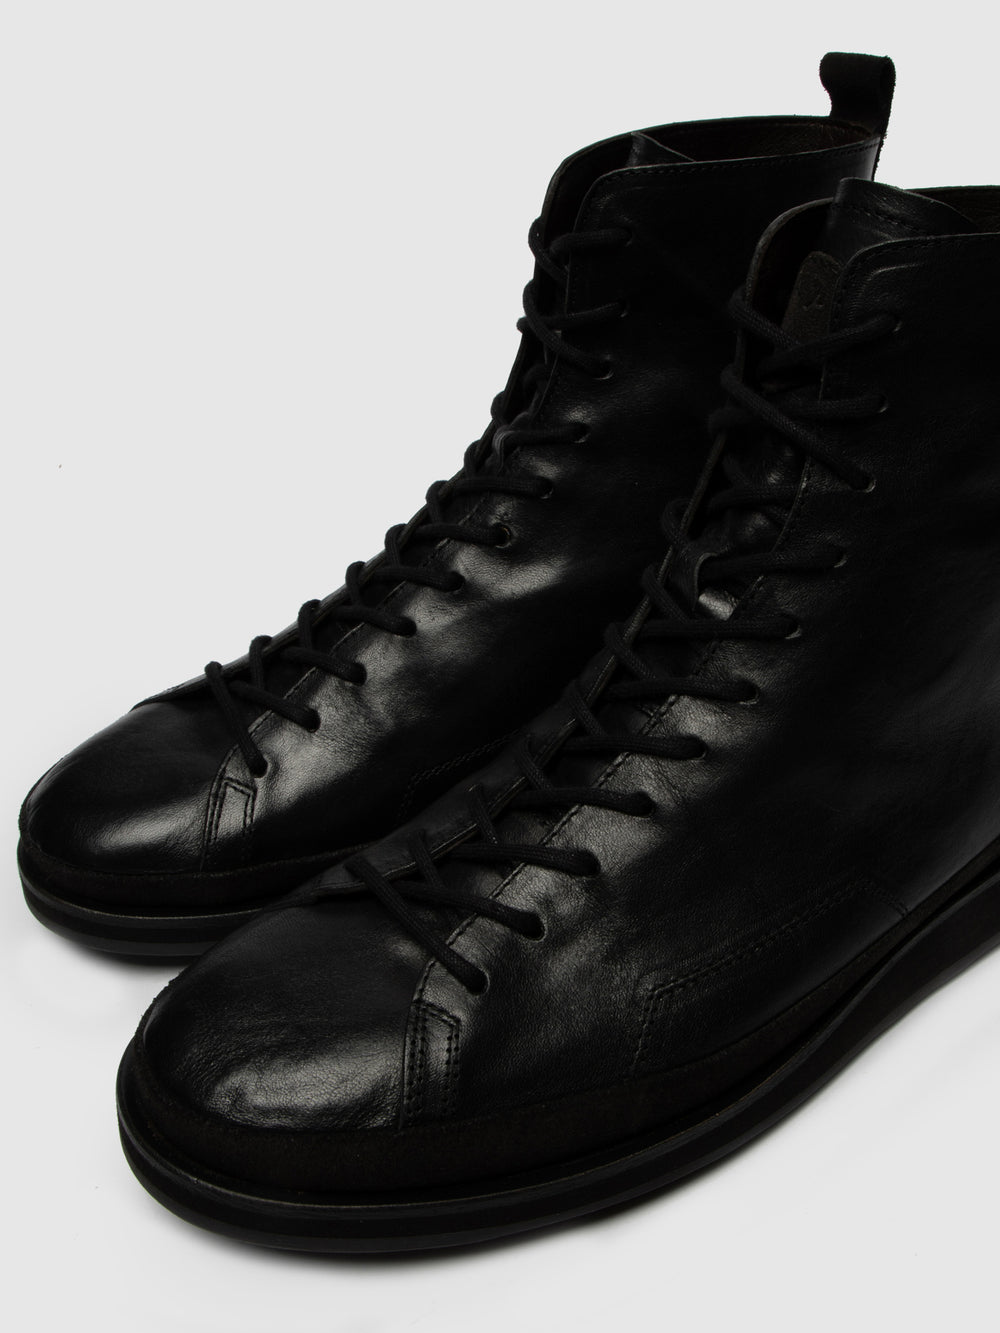 Lace-up Ankle Boots JOKA700FLY ESTIGMA/OILSUEDE(VEGETAL) BLACK/DIESEL